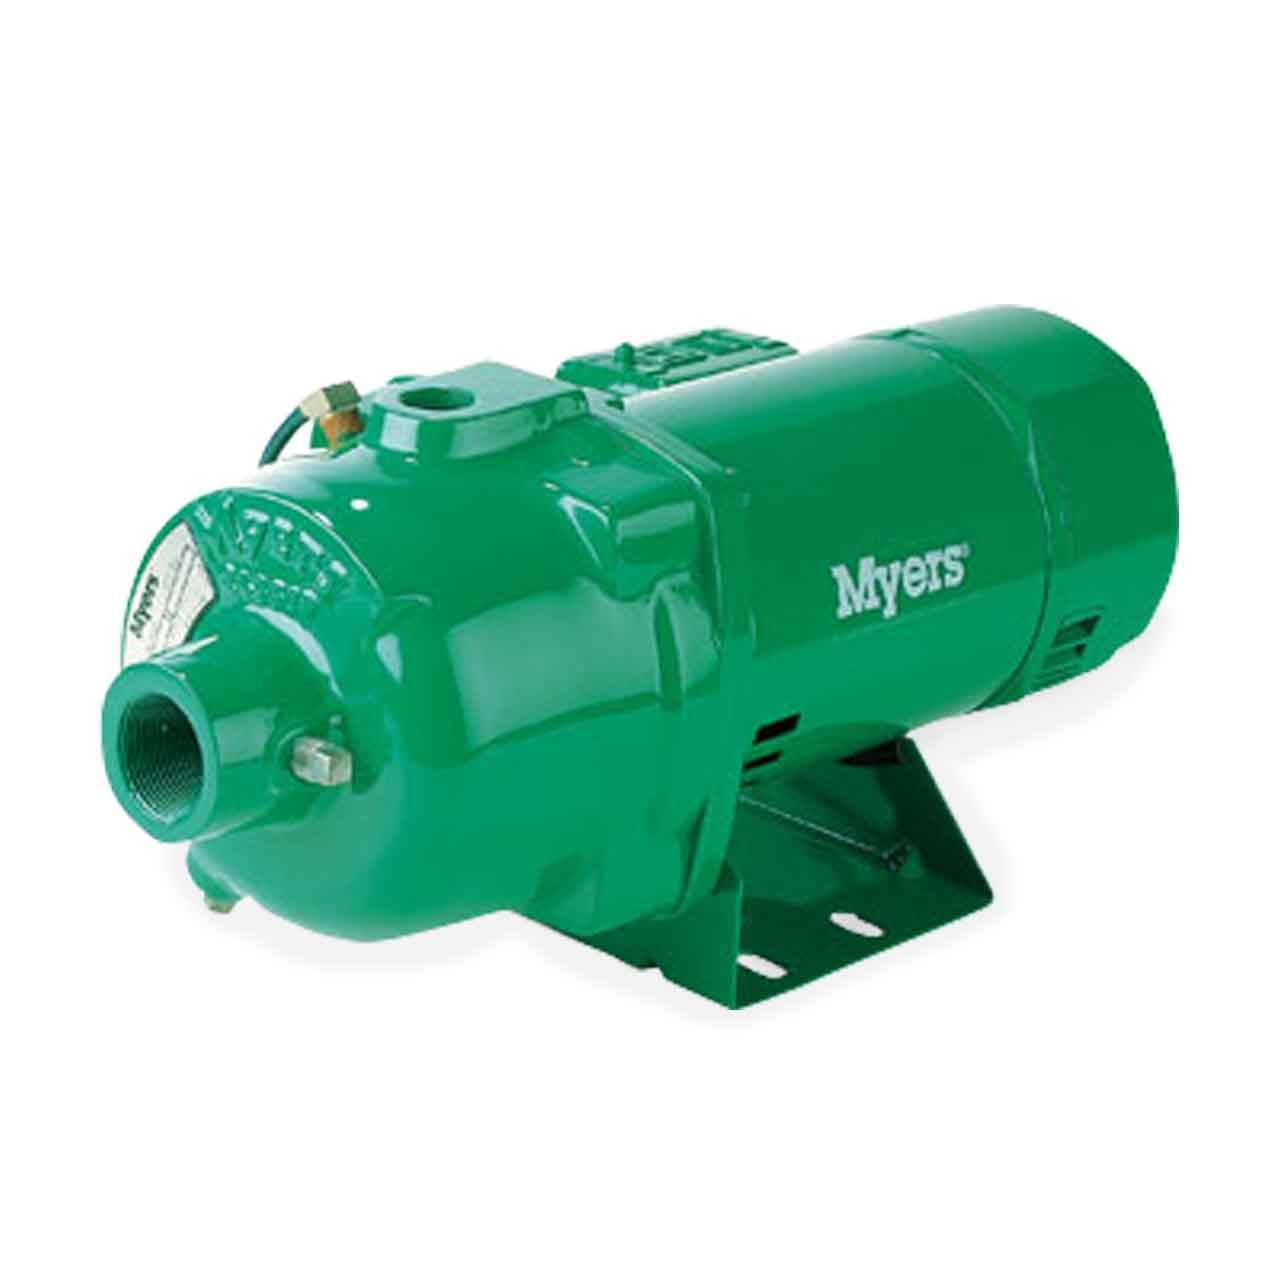 hight resolution of myers myers hr50s series convertible jet pumps 0 5 hp 115 230vmyers hr50s wiring diagram